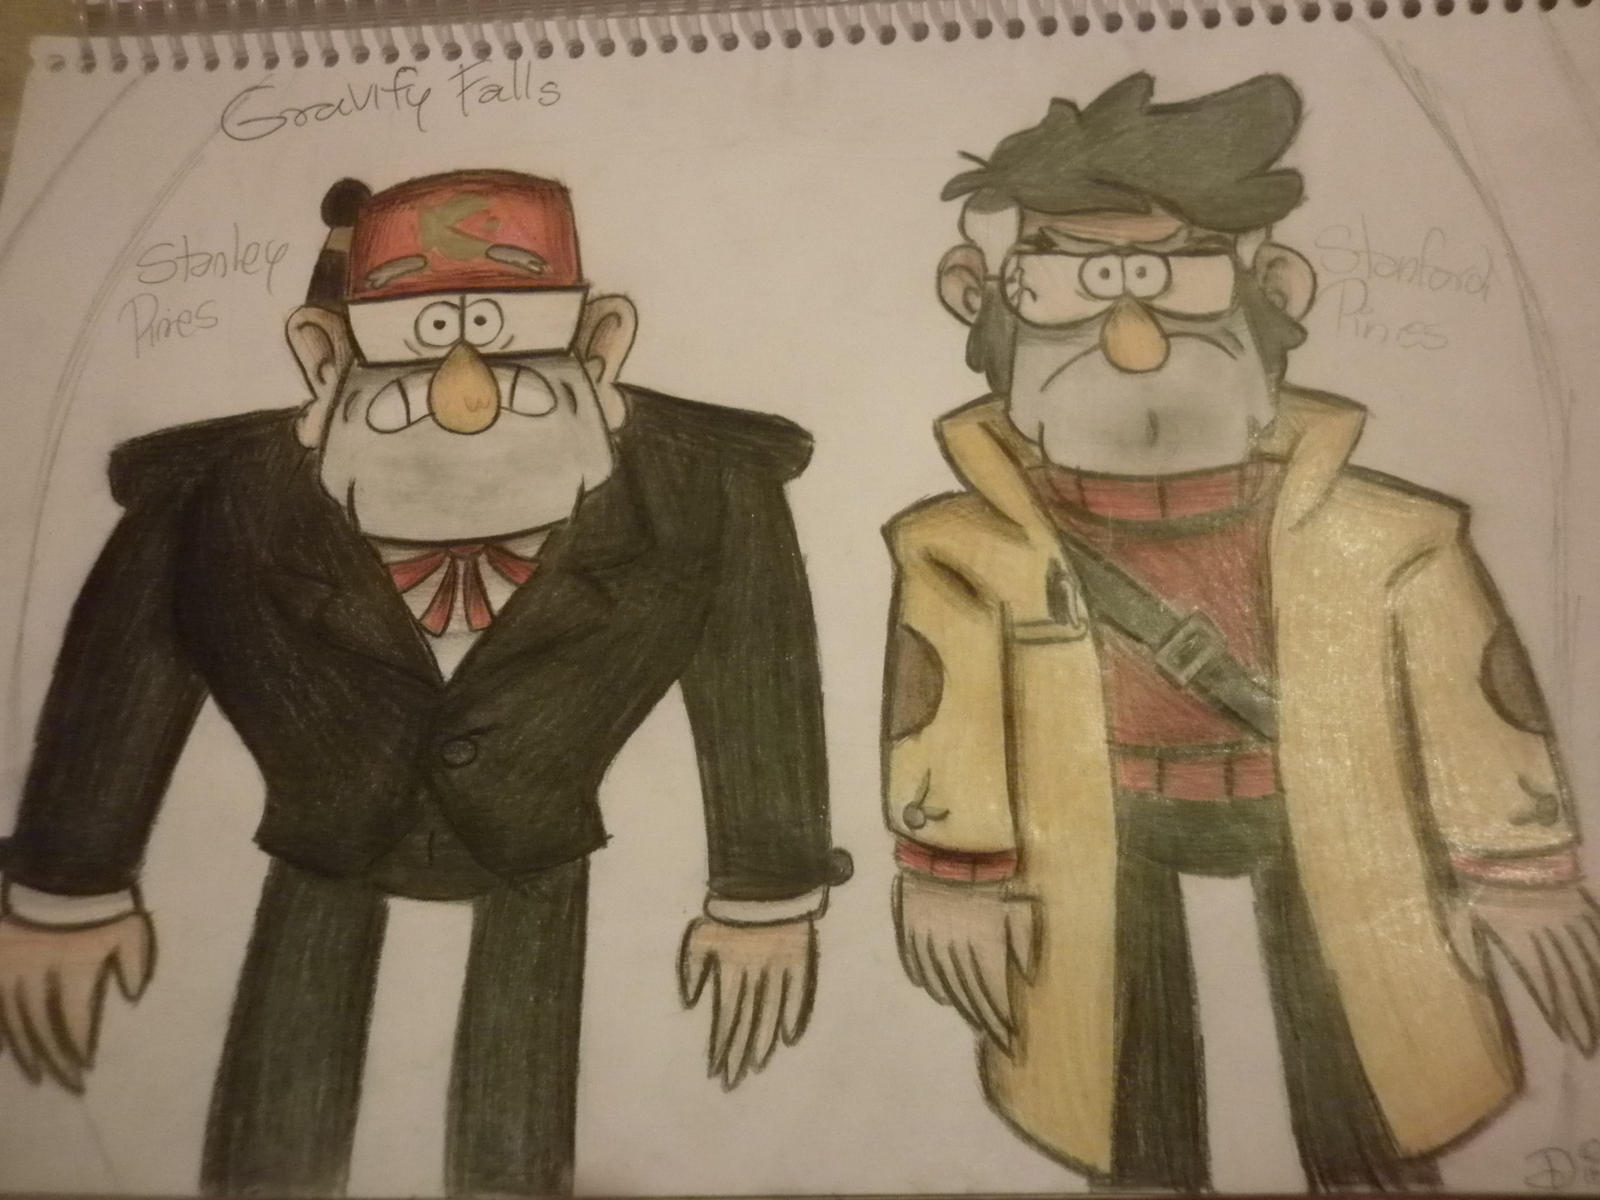 Grunkle Ford